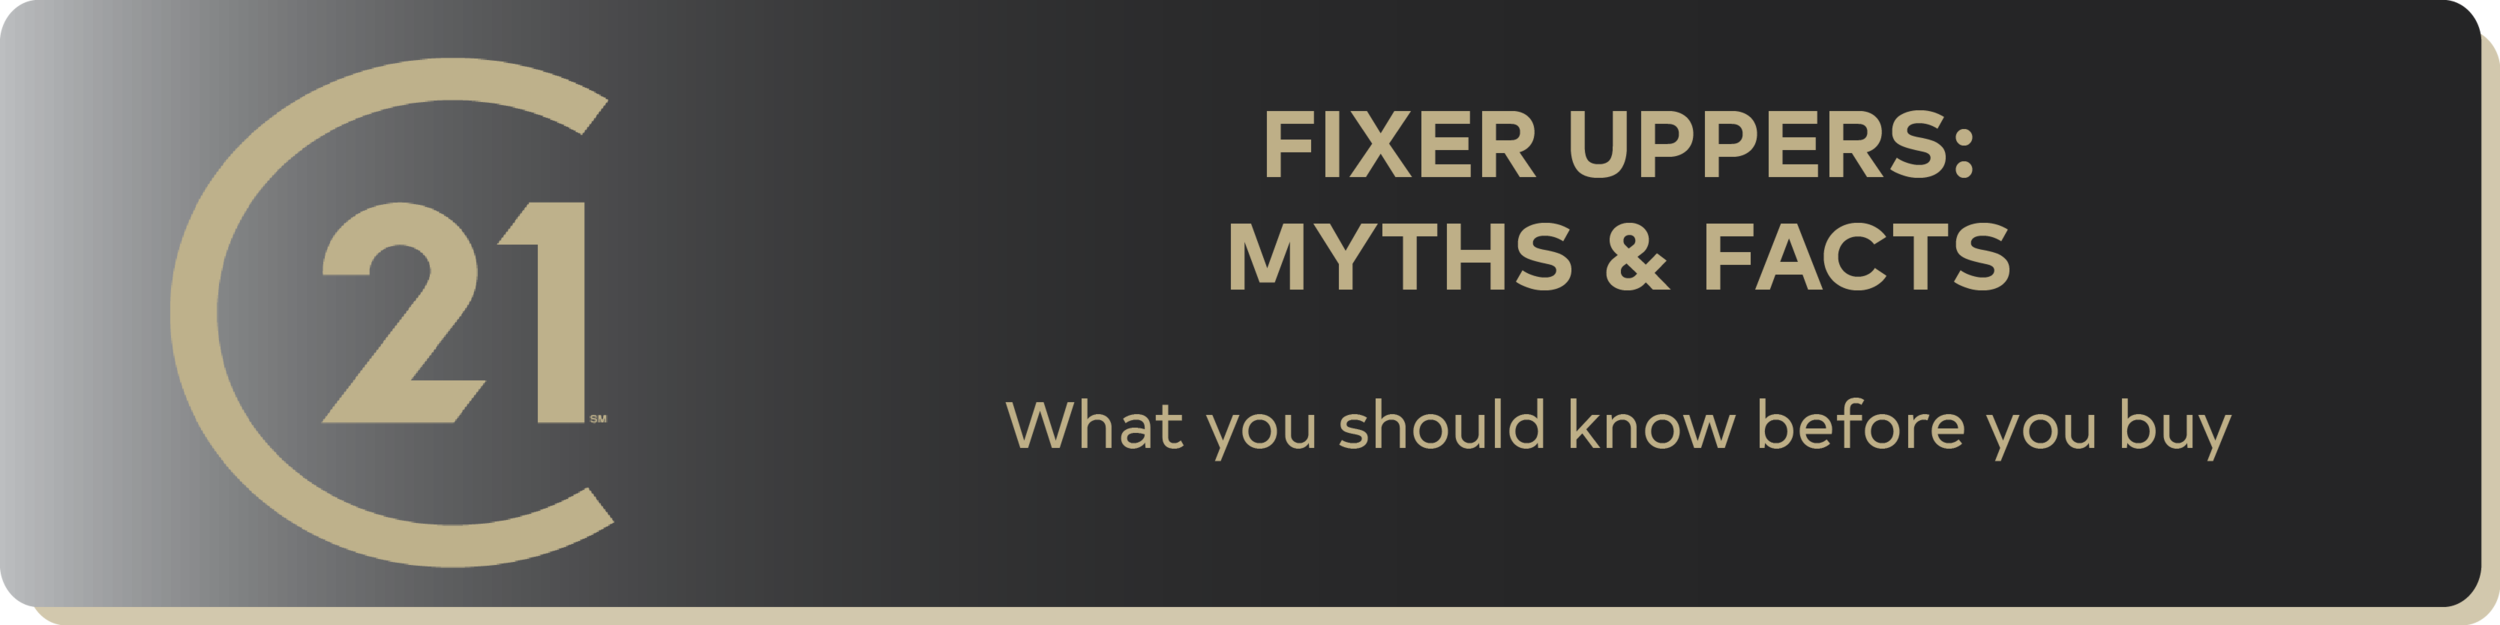 fixer uppers myths and facts.png